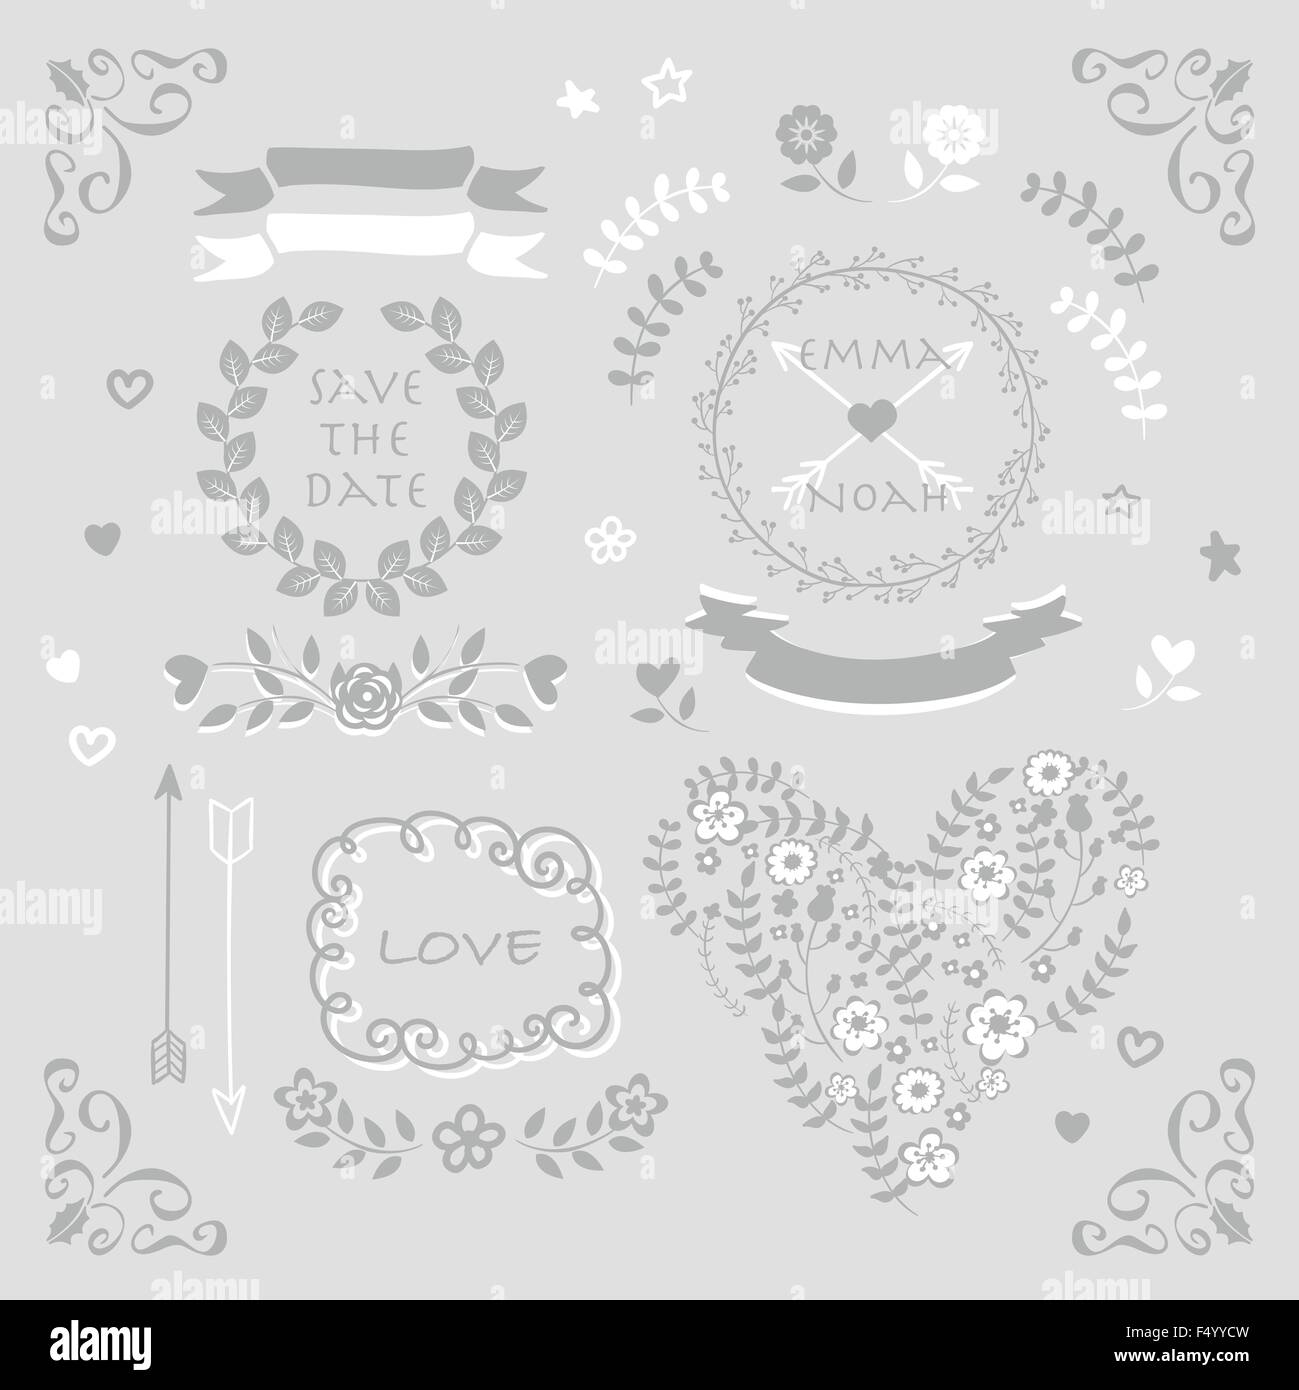 Silver and grey vector wedding design element symbol set stock silver and grey vector wedding design element symbol set buycottarizona